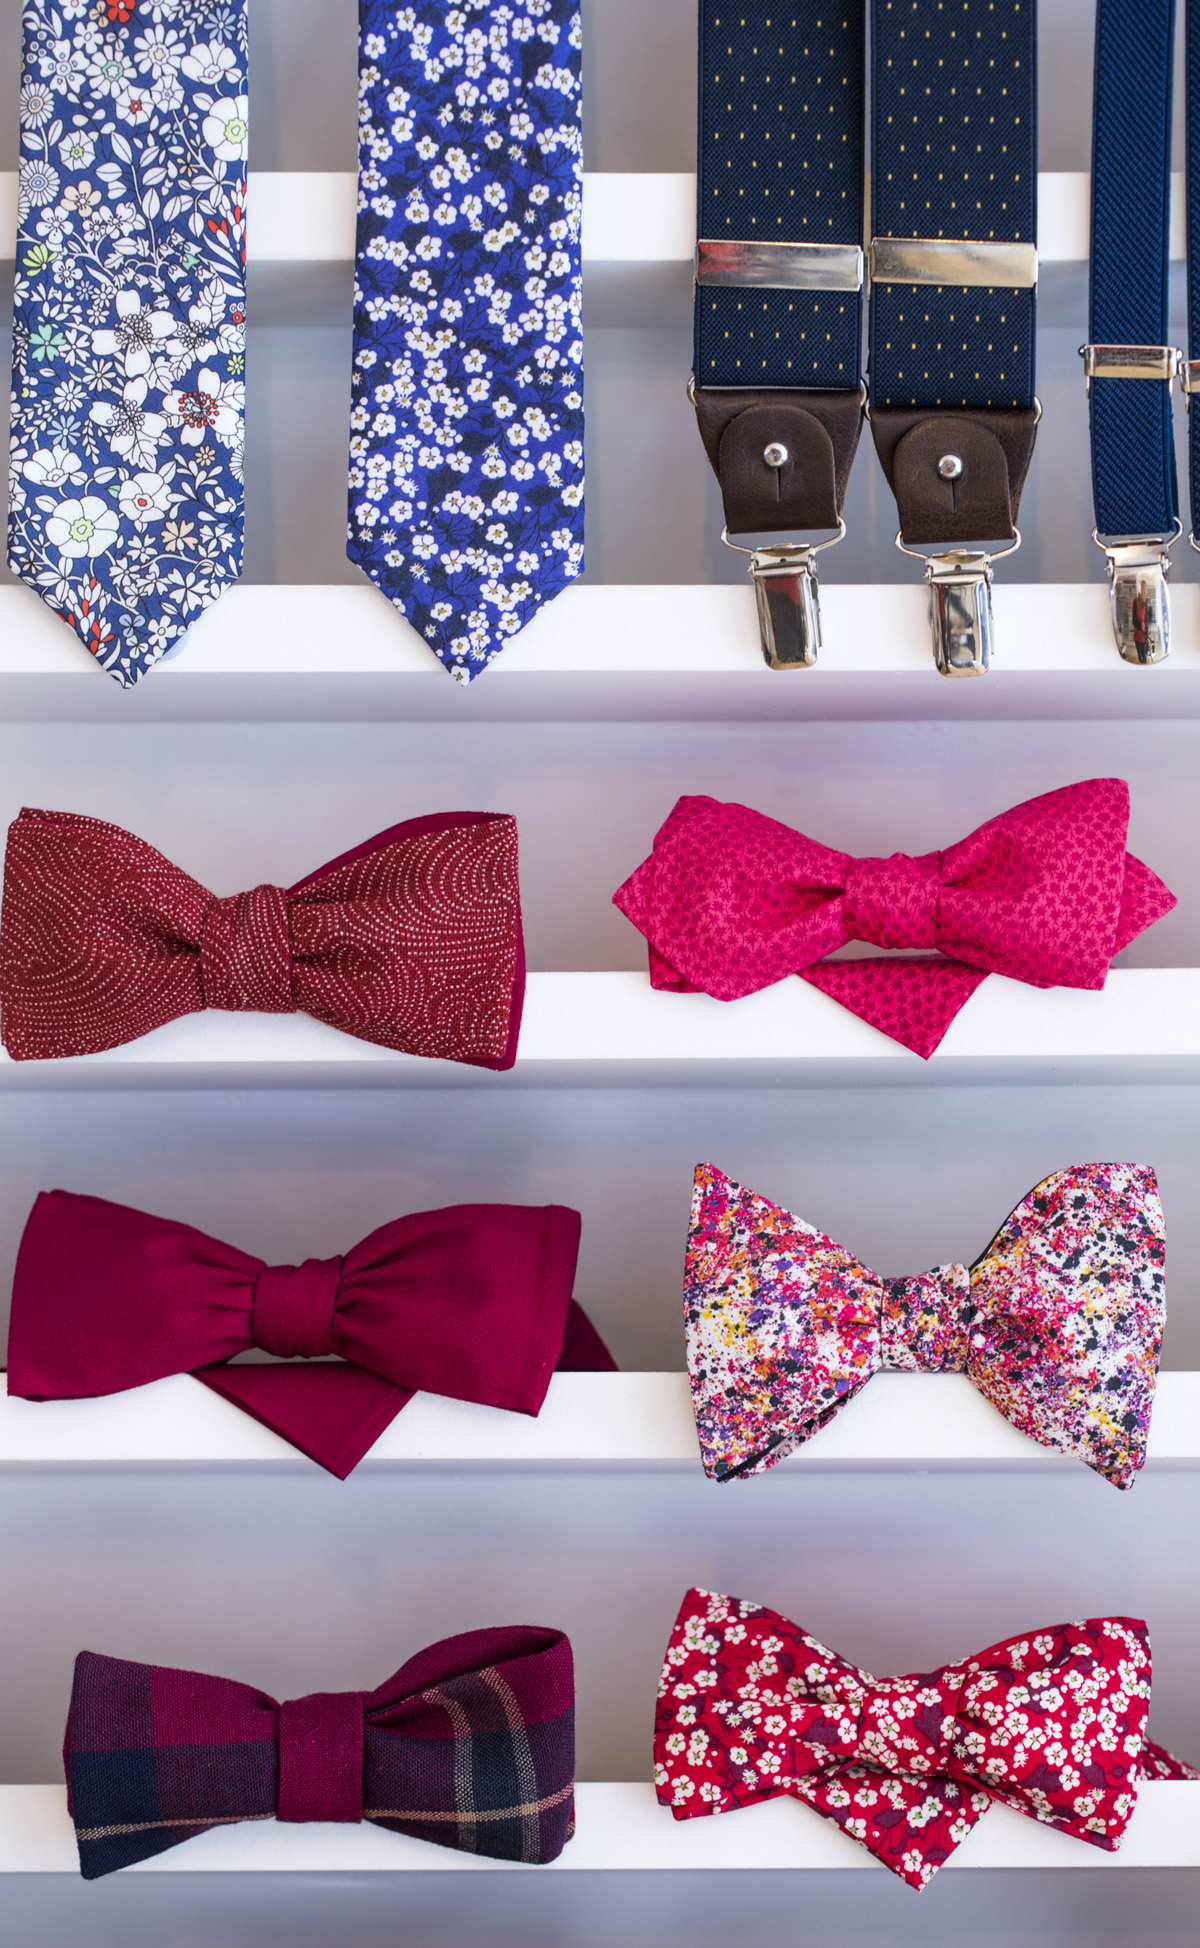 878212a13623 Le Colonel Moutarde groom accessories colourful bow ties - Le Colonel  Moutarde – Modern Bow Ties. ""